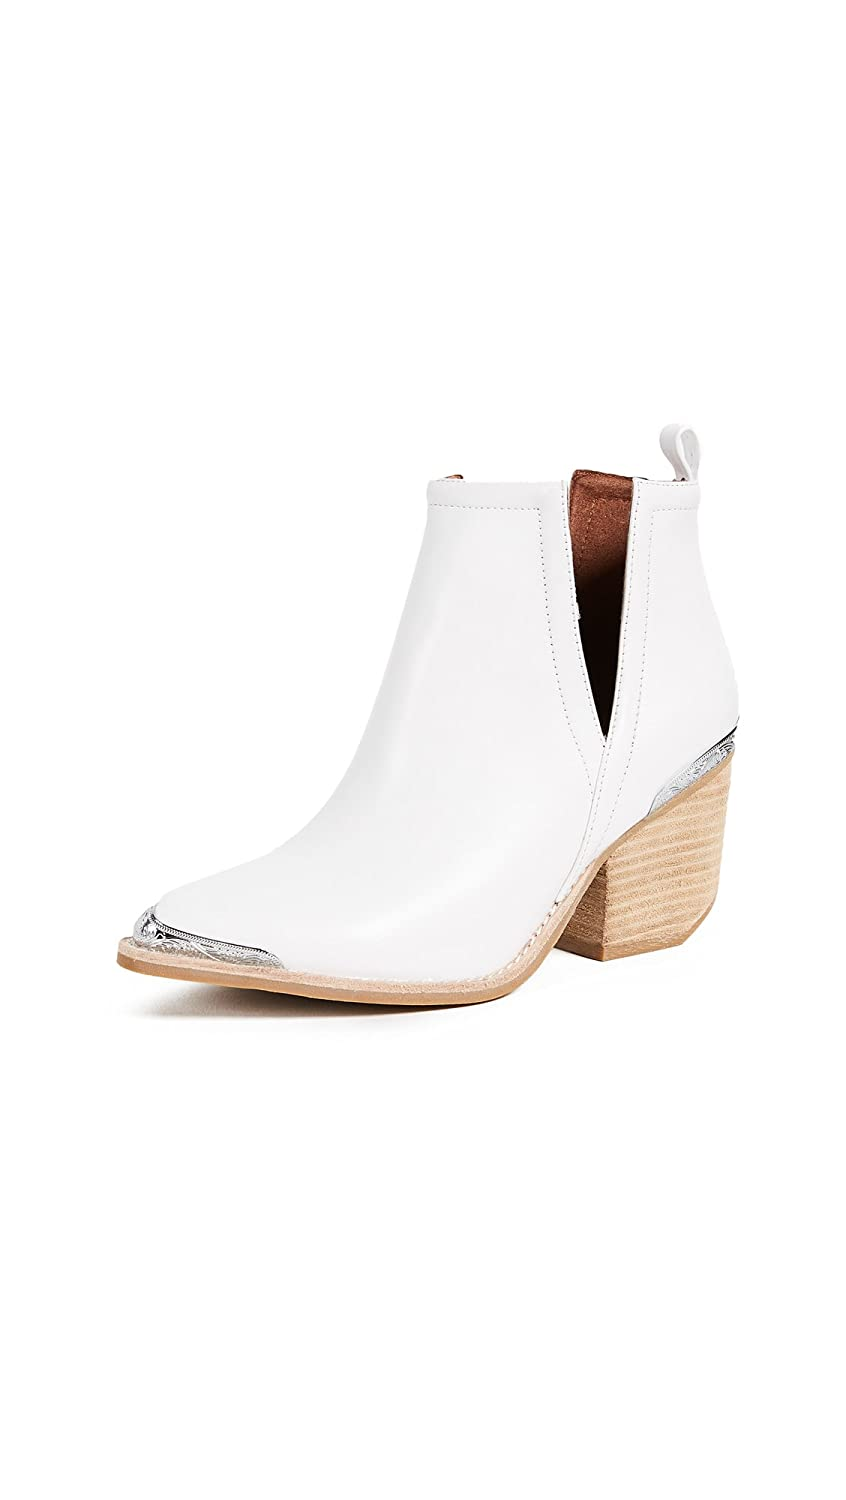 Jeffrey Campbell Women's Cromwell Booties B07DFL85N5 11 B(M) US|White